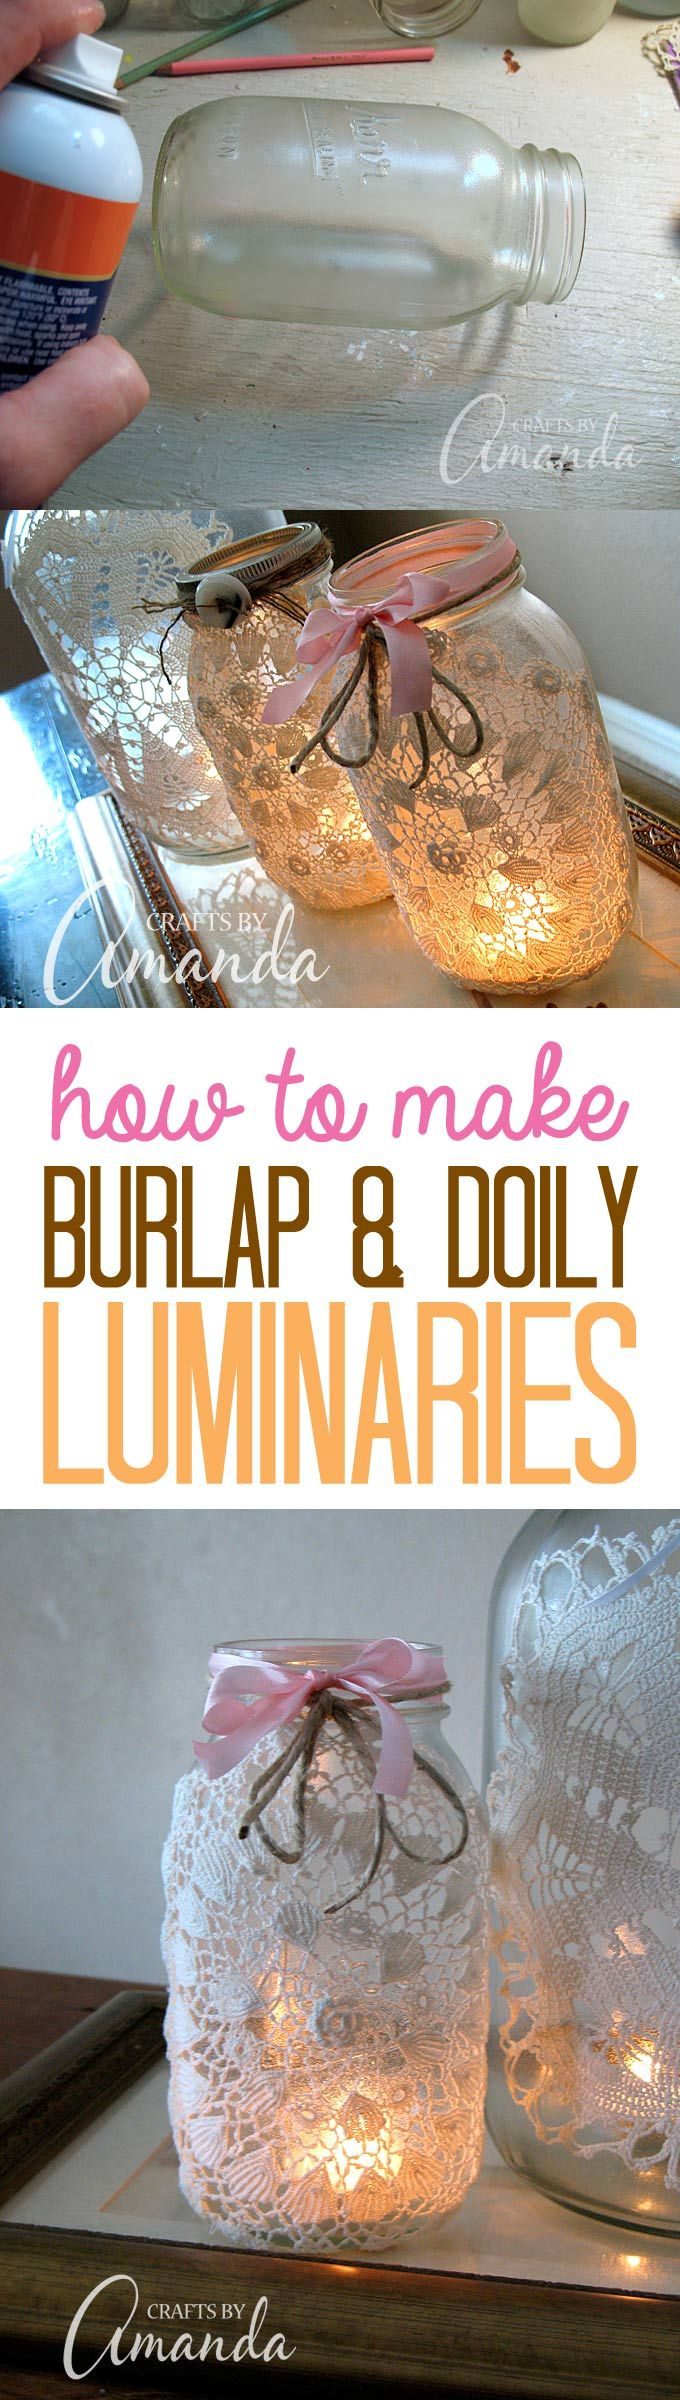 Make beautiful burlap & doily luminaries using recycled jars, doilies and a little burlap and twine. These doily luminaries are perfect for weddings, holidays, or just for some added beauty. Such an easy craft project!